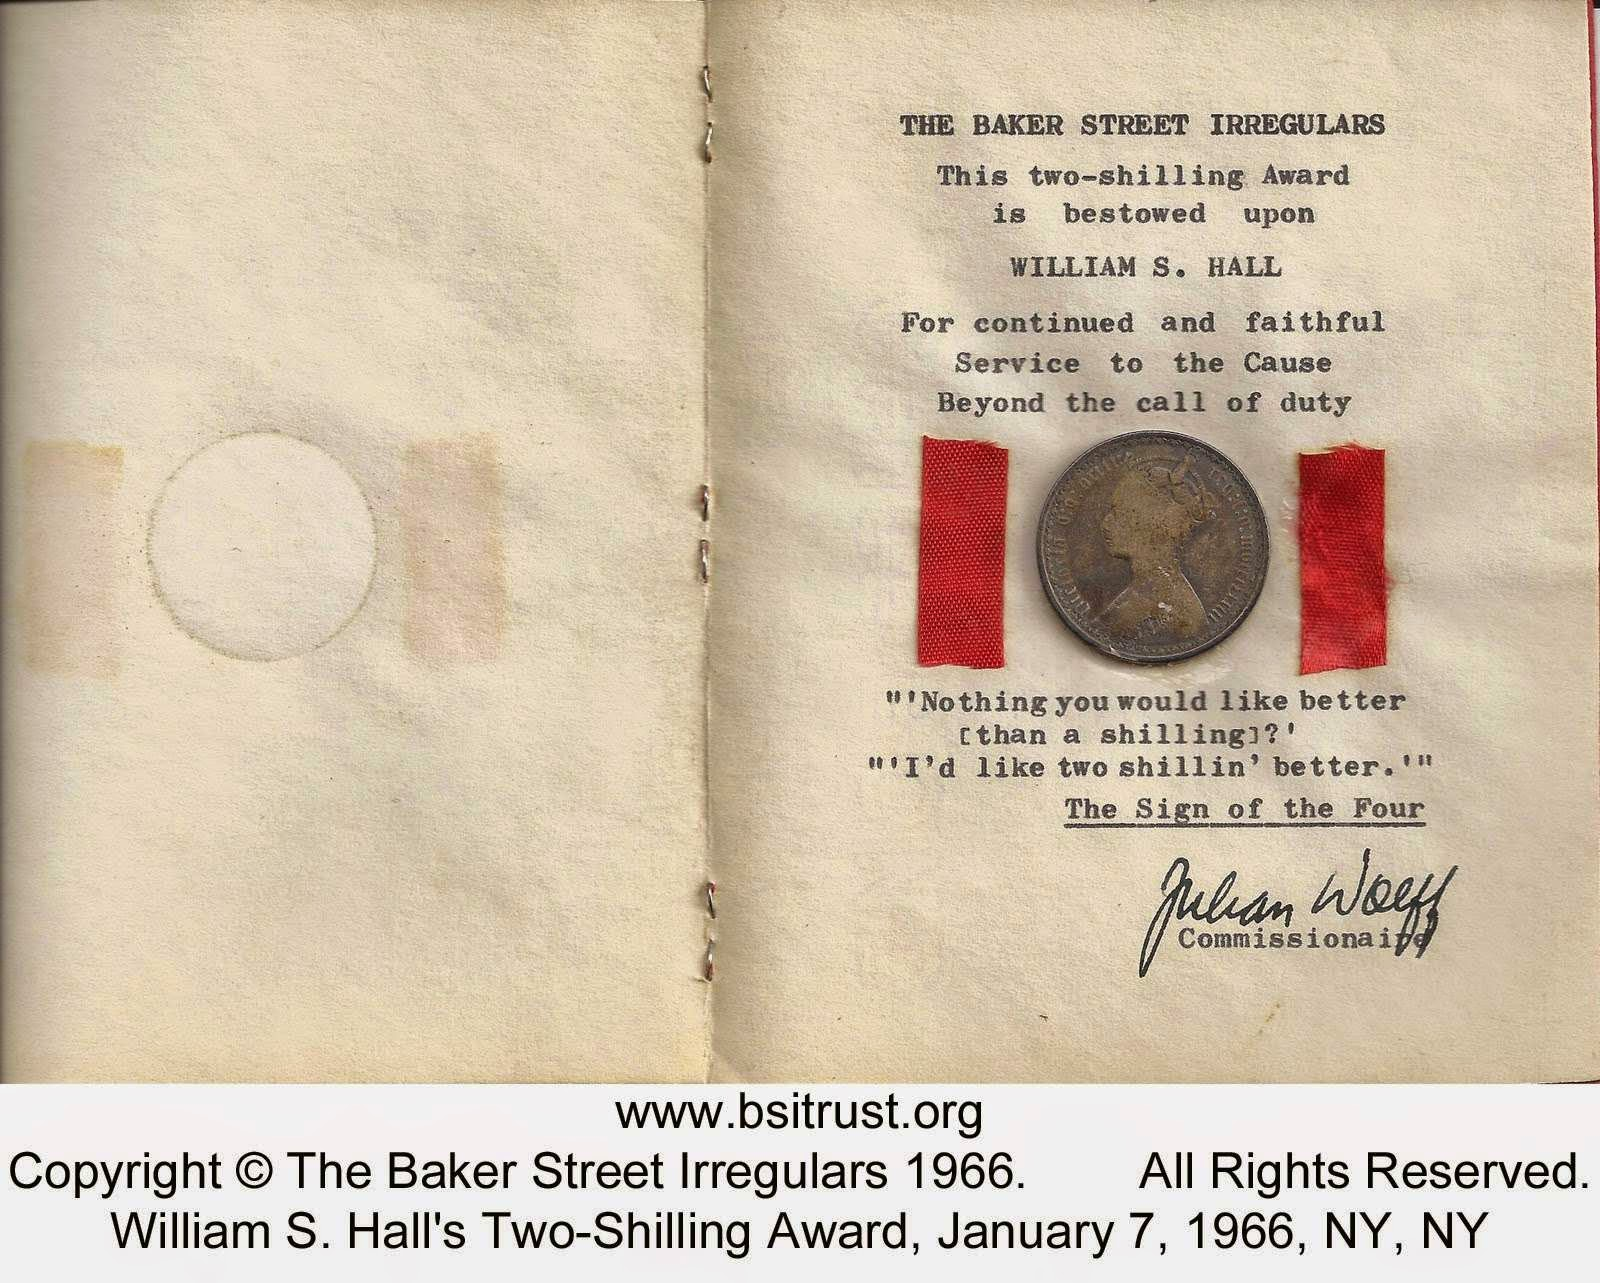 Two-Shilling Award: Baker Street Irregulars 1966